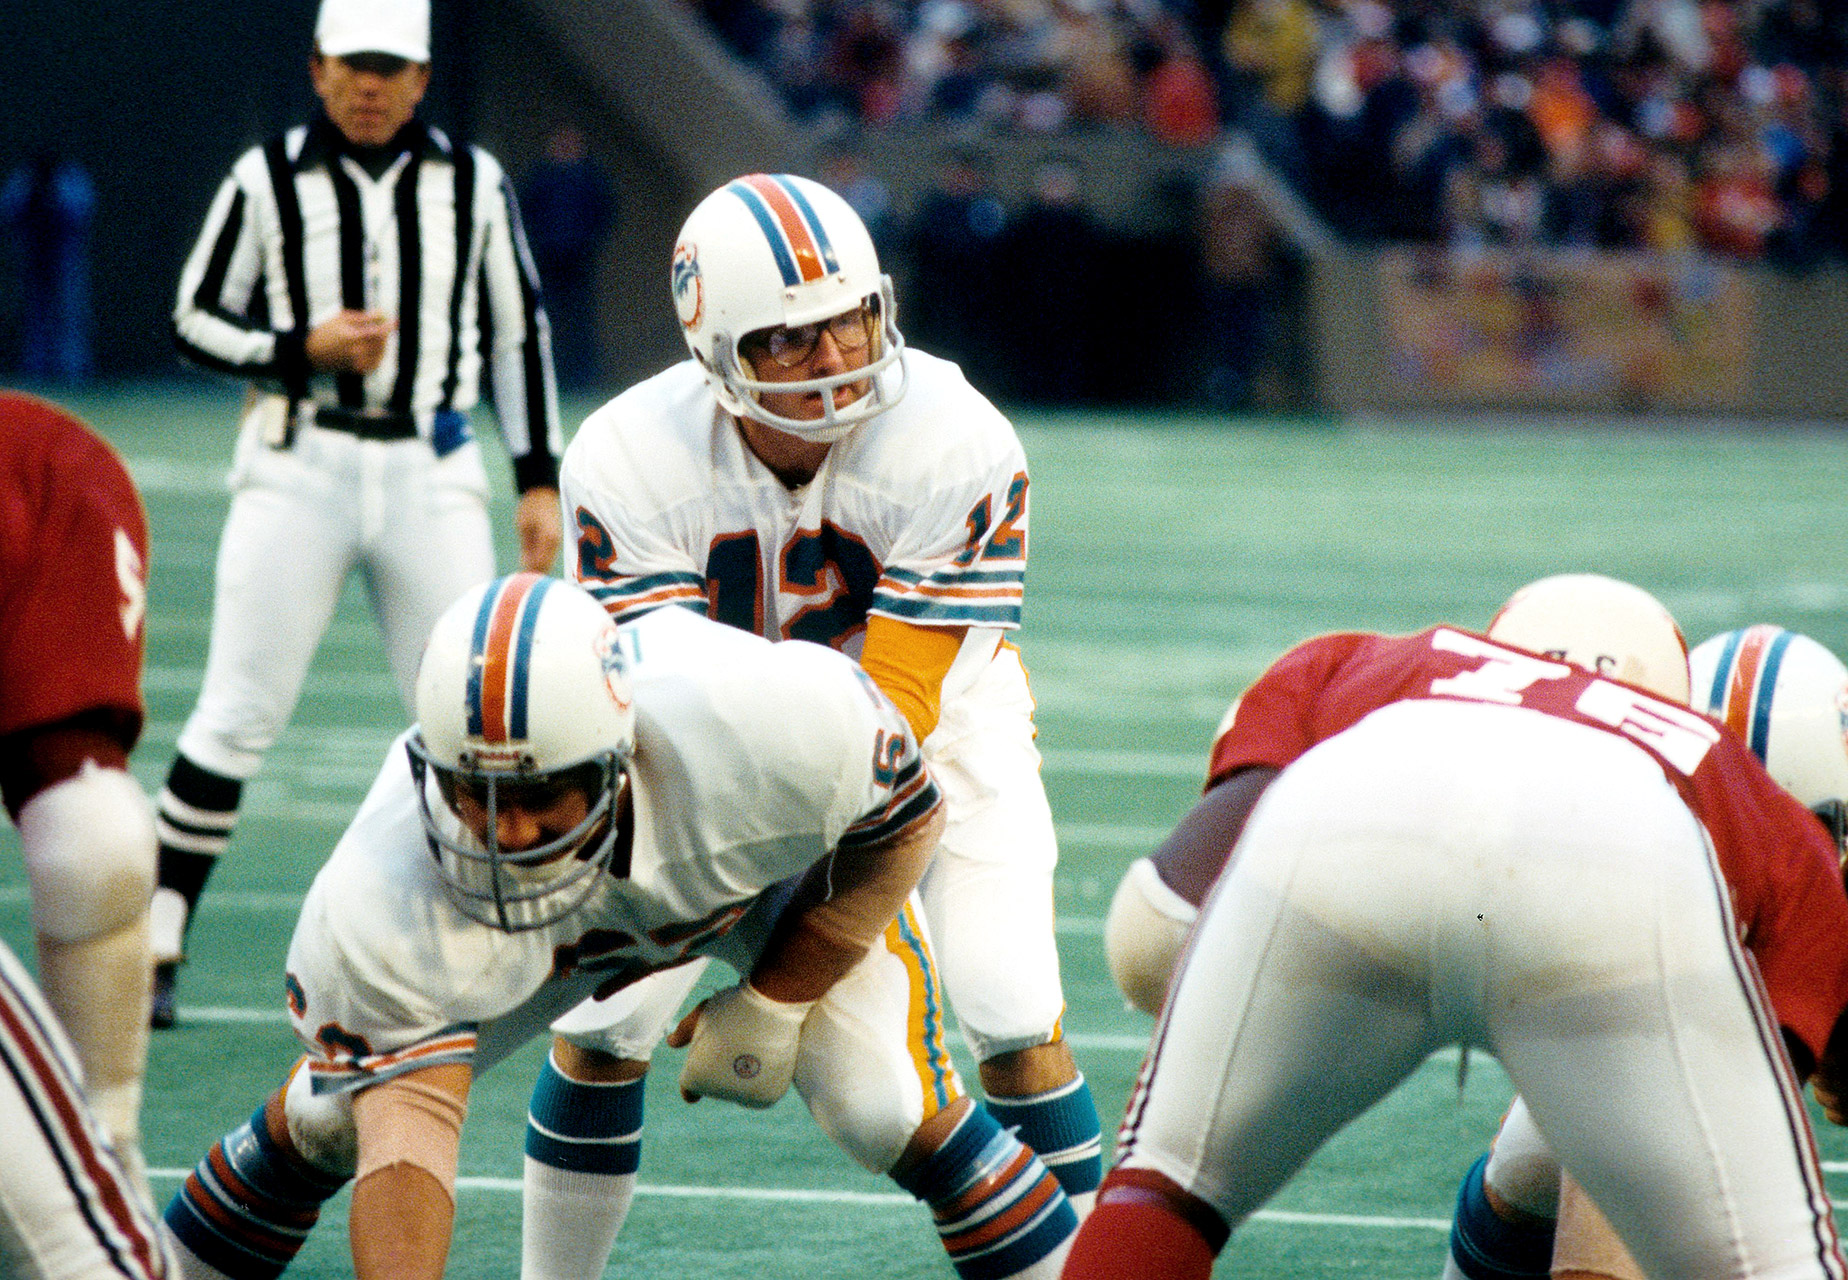 Nov. 24, 1977: Dolphins 55, St. Louis Cardinals 14 - Thanksgiving Day ...